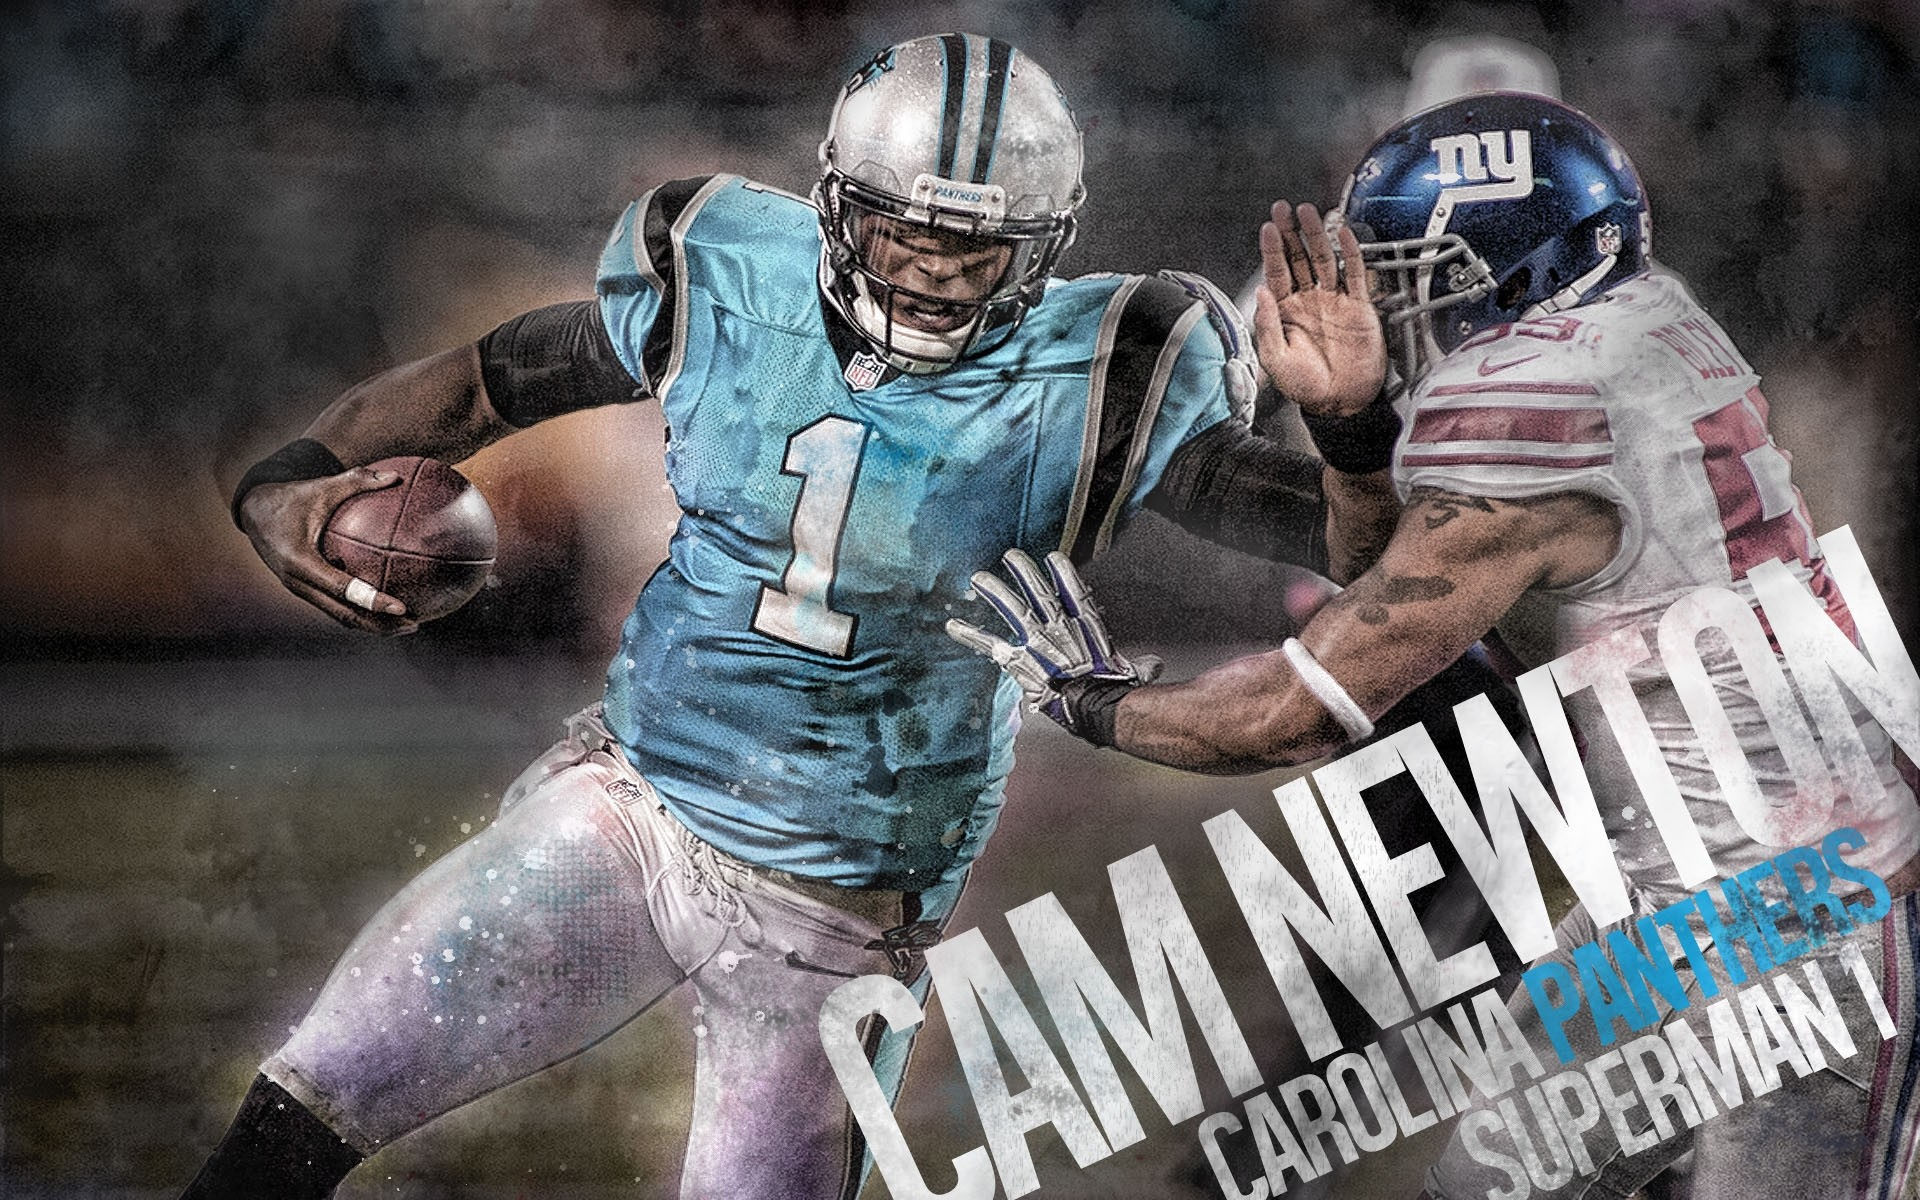 … Cam Newton Wallpaper Panthers Cam Newton Wallpapers 2017